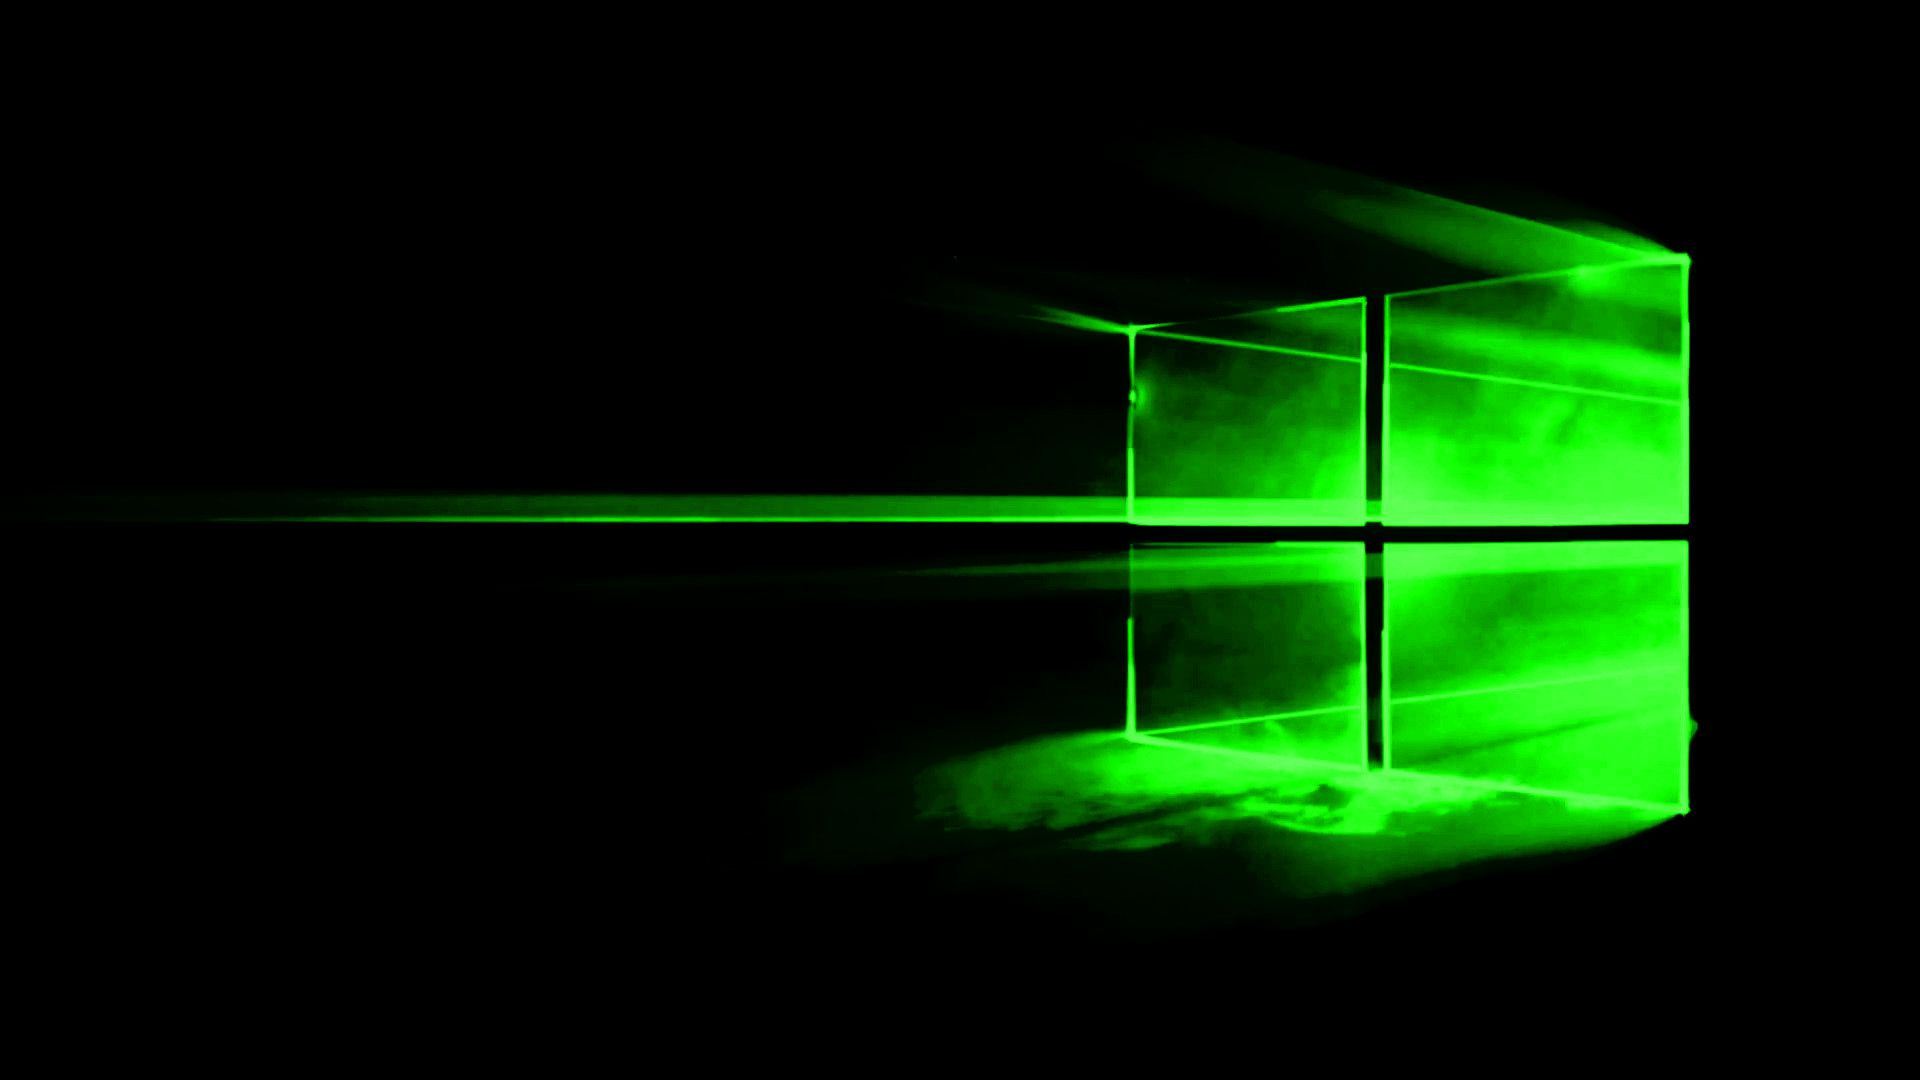 1920x1080 Green windows 10 wallpaper Imgur Green